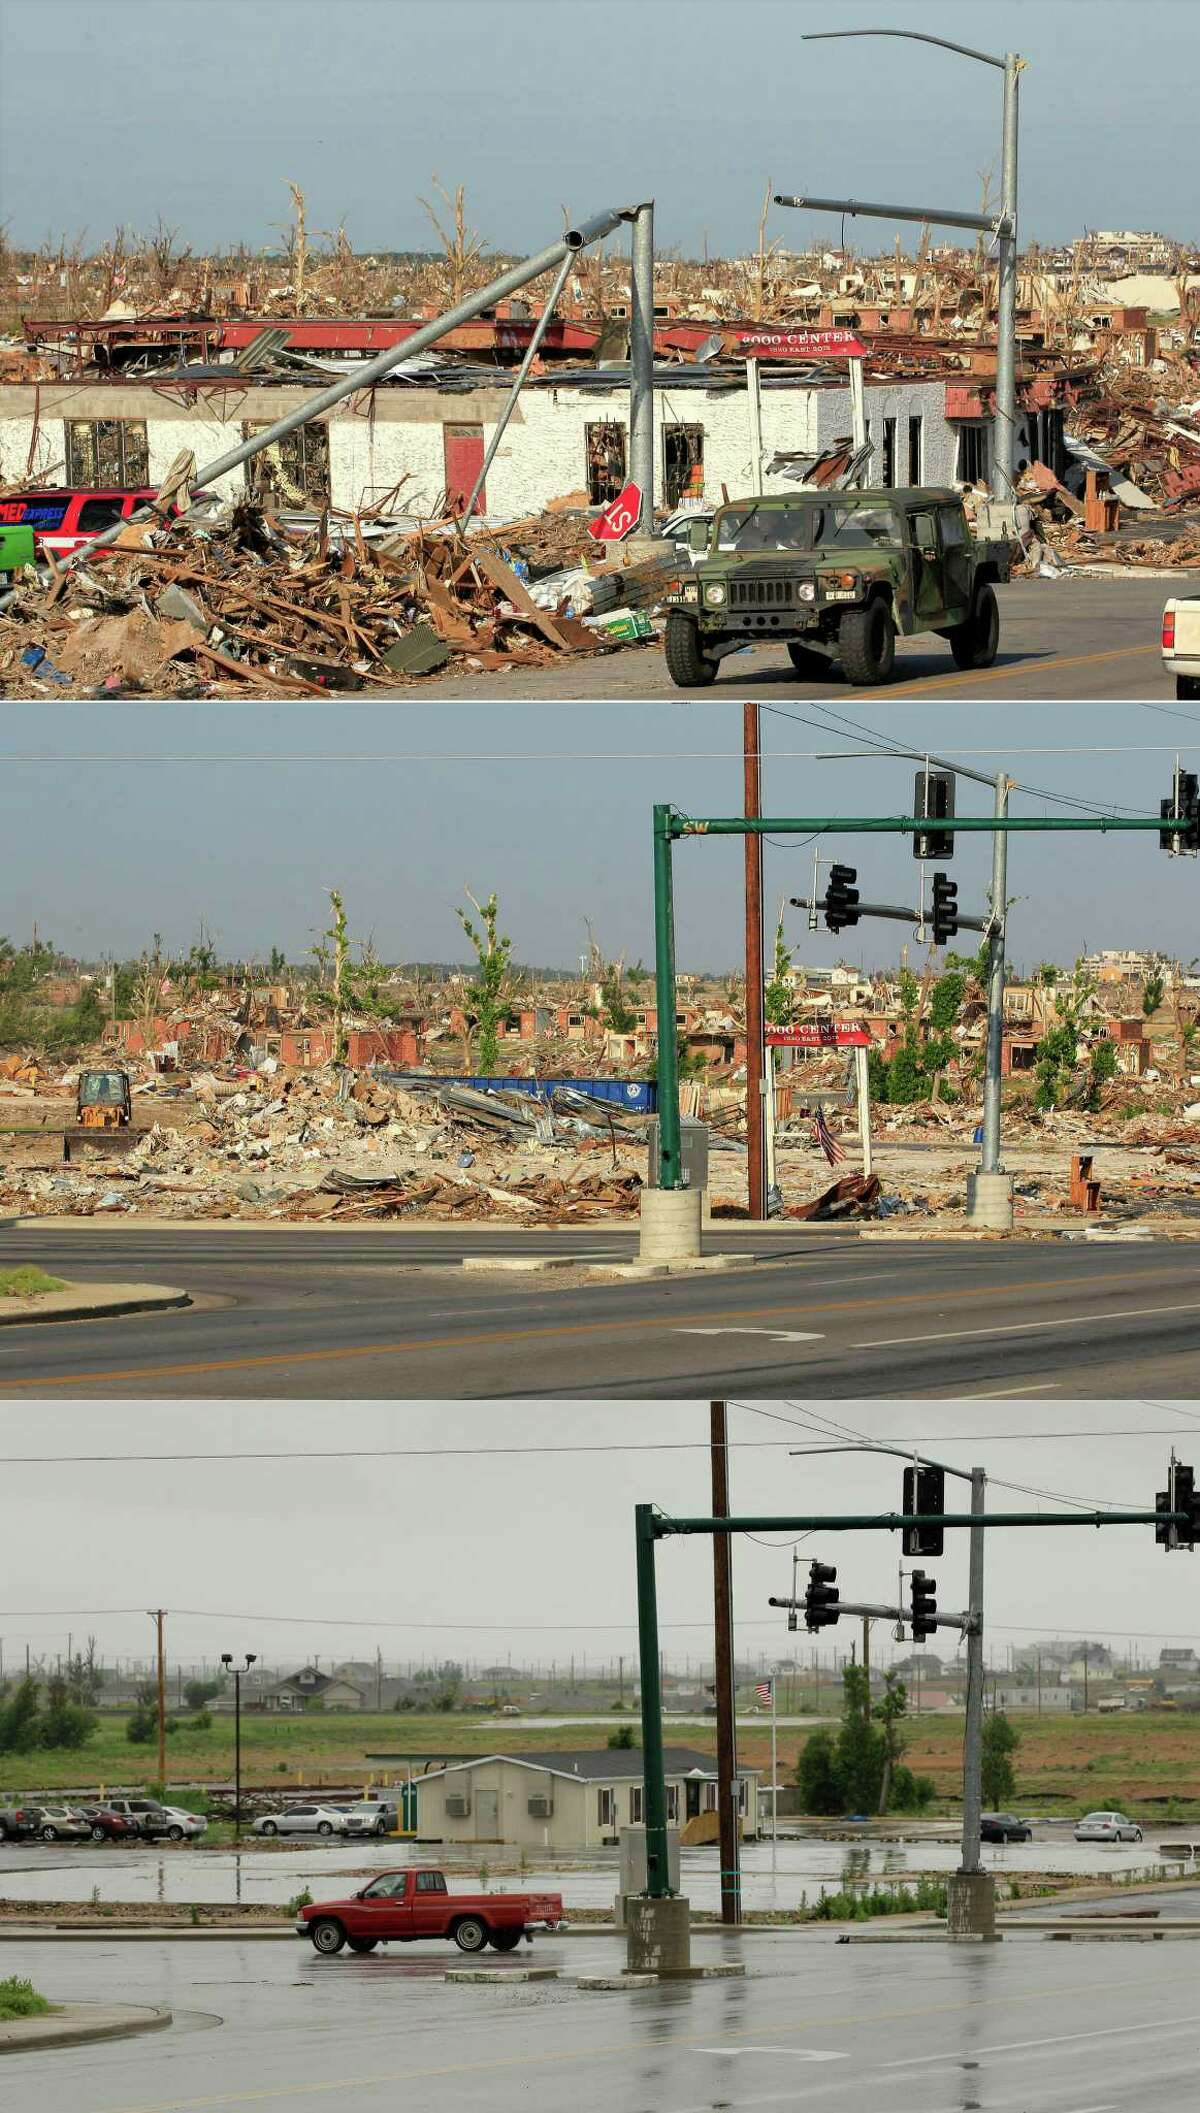 This three-photo combo shows a scene taken on May 27, 2011, top, July 21, 2011, center, and May 7, 2012, bottom, shows progress made in Joplin, Mo. in the year after an EF-5 tornado destroyed a large swath of the city and killed 161 people.